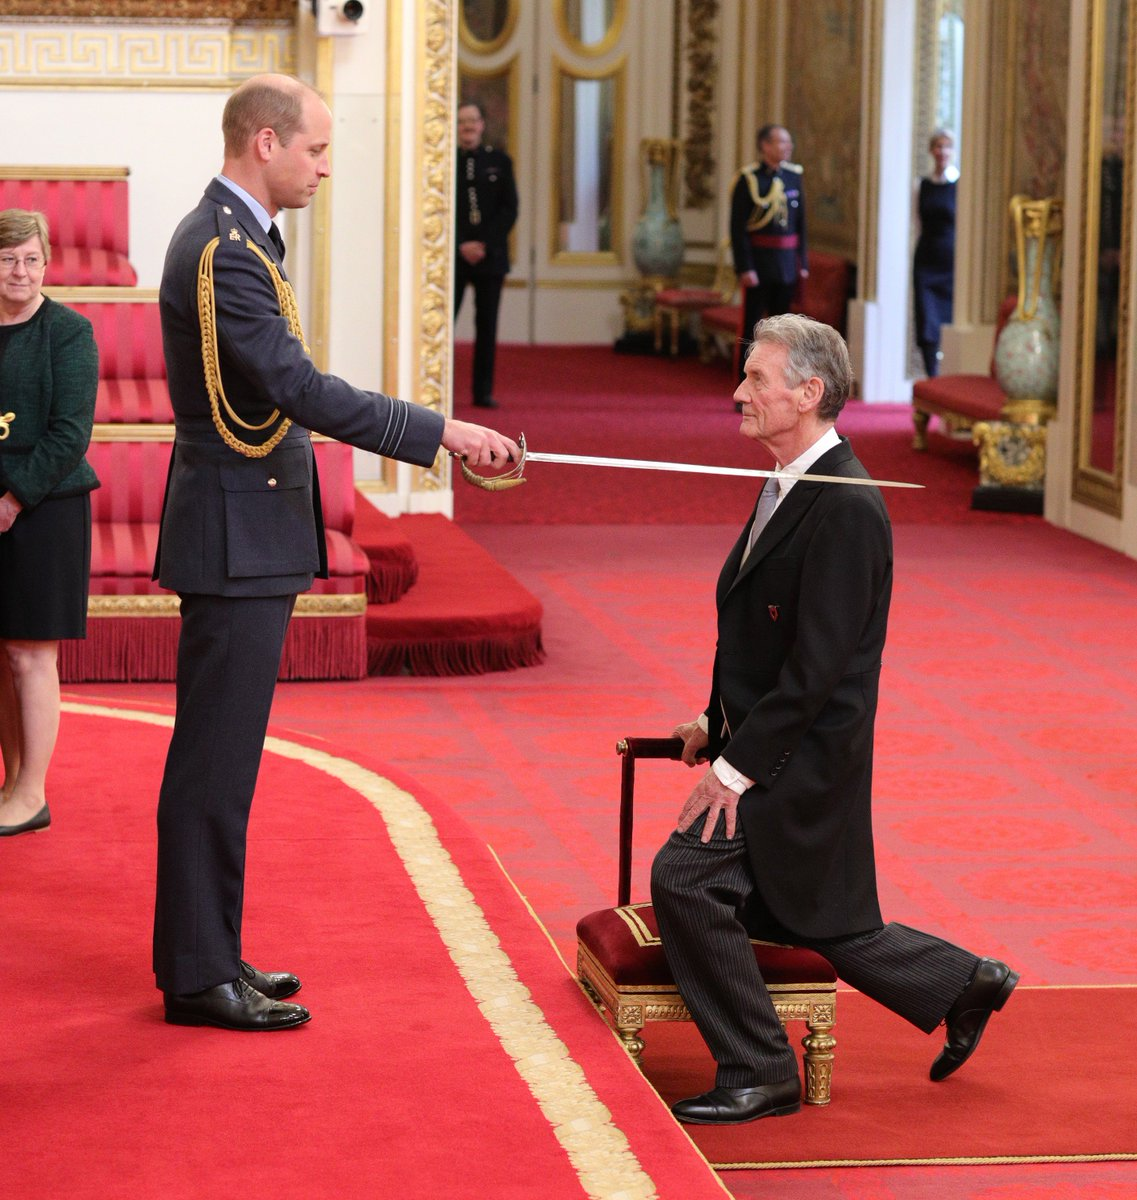 Today the Duke of Cambridge held an Investiture at #BuckinghamPalace.   Sir Michael Palin was awarded the Honour of Knighthood in recognition of his services travel, culture and geography, https://t.co/vEhl2pK8Pa